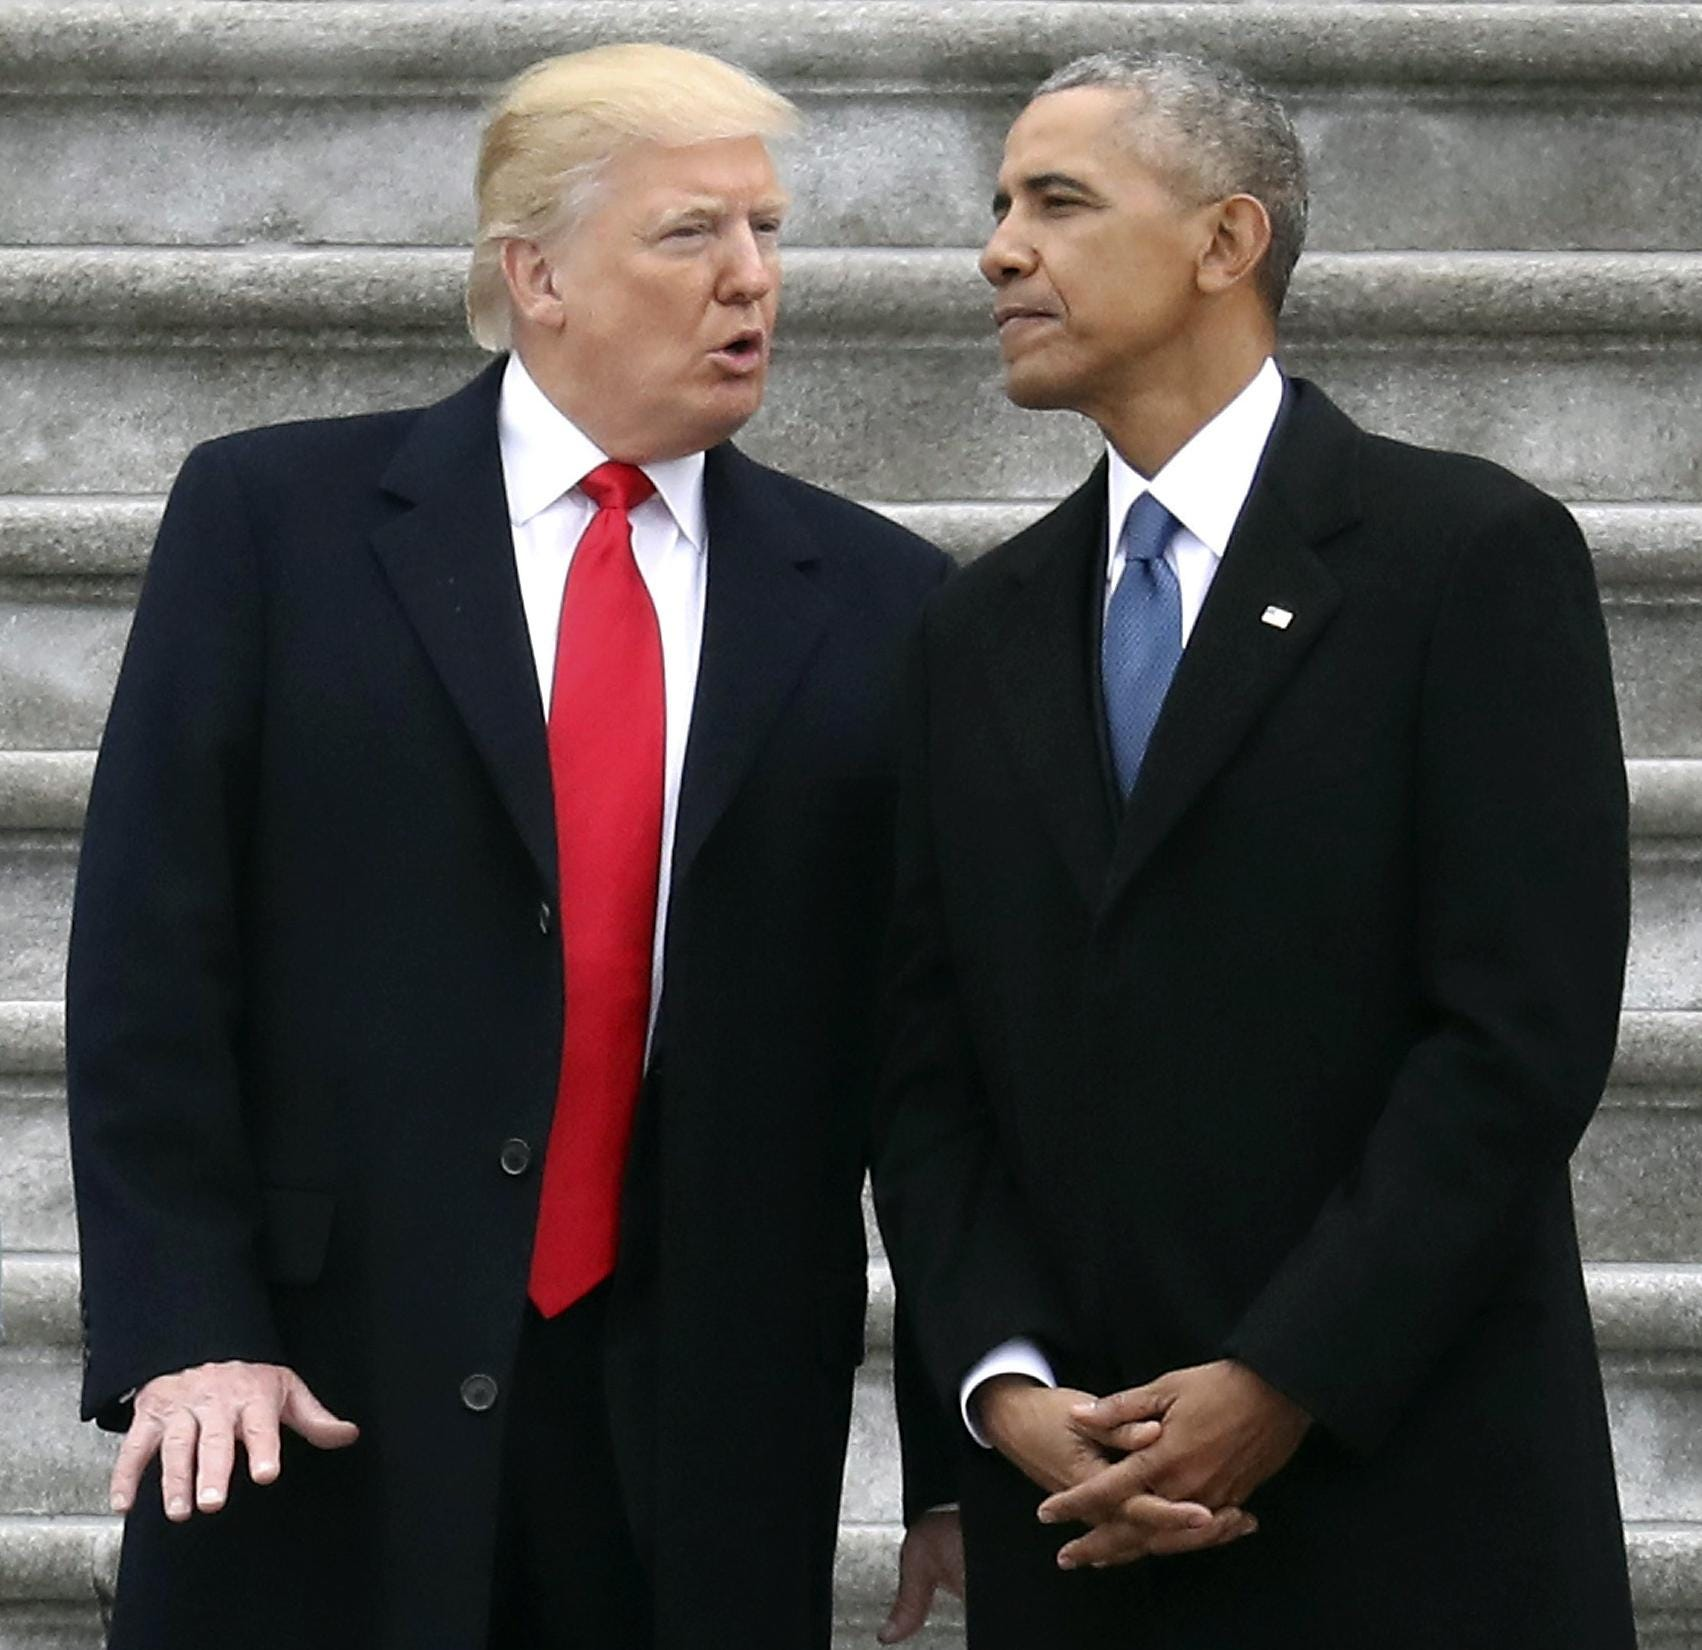 Survey finds Trump is worst president ever, Obama in top 10